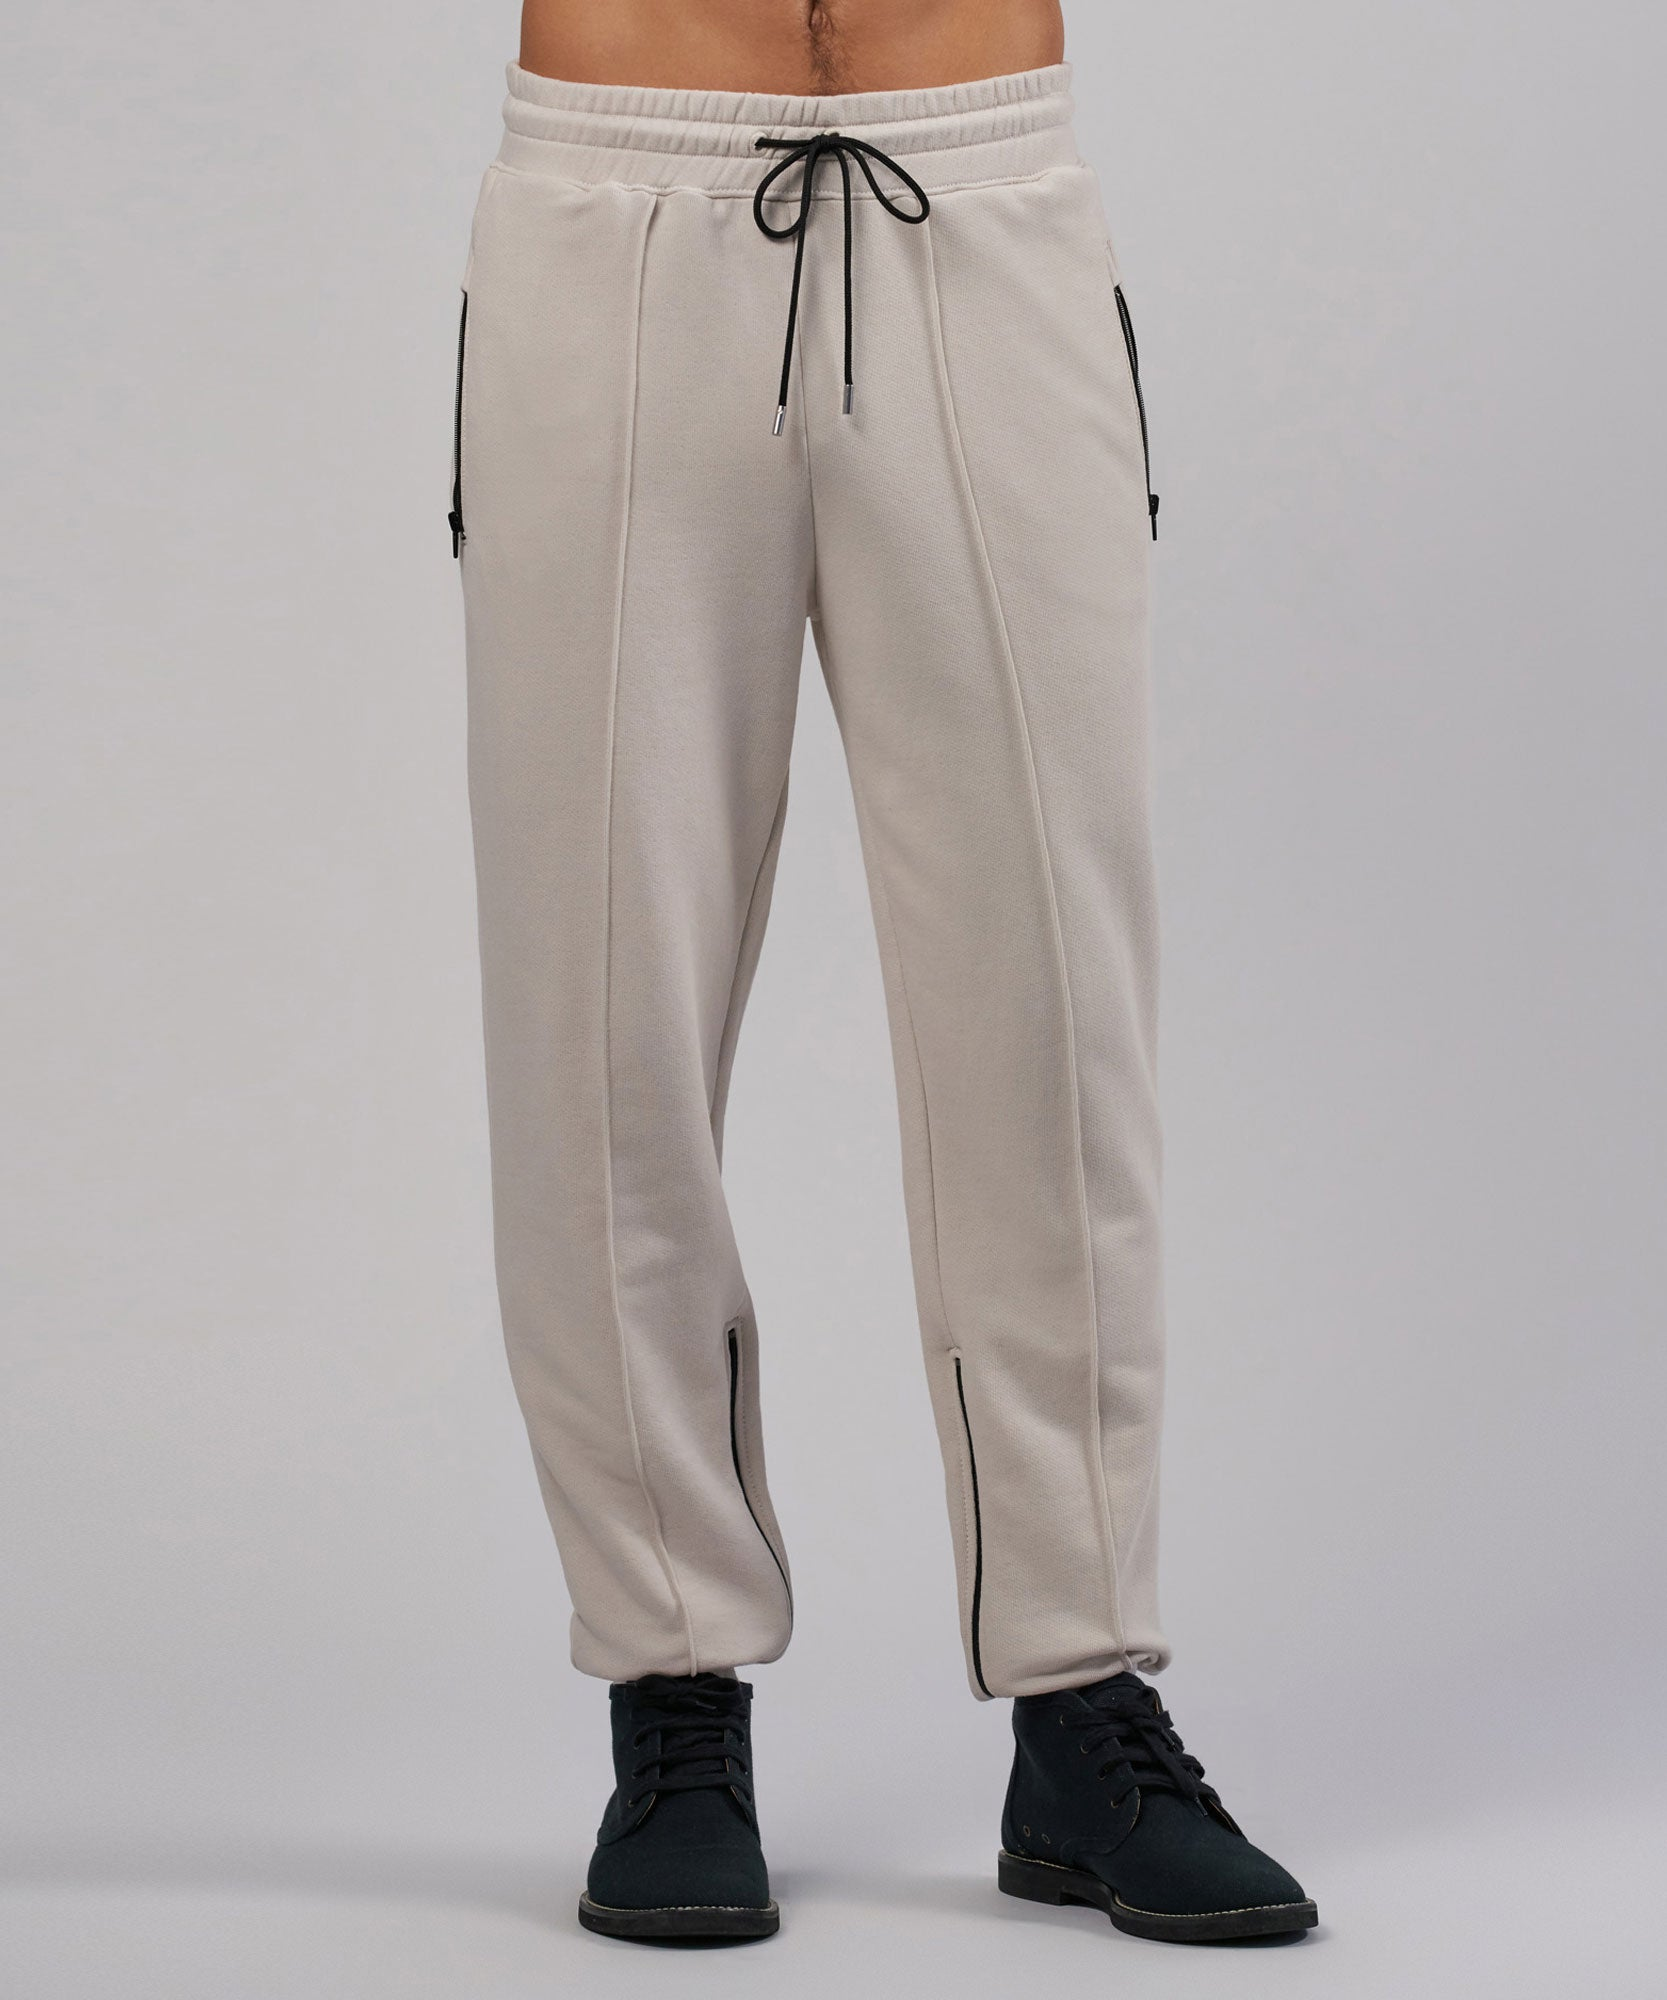 Tan French Terry Zippered Sweatpants - Mens Pants by ATM Anthony Thomas Melillo